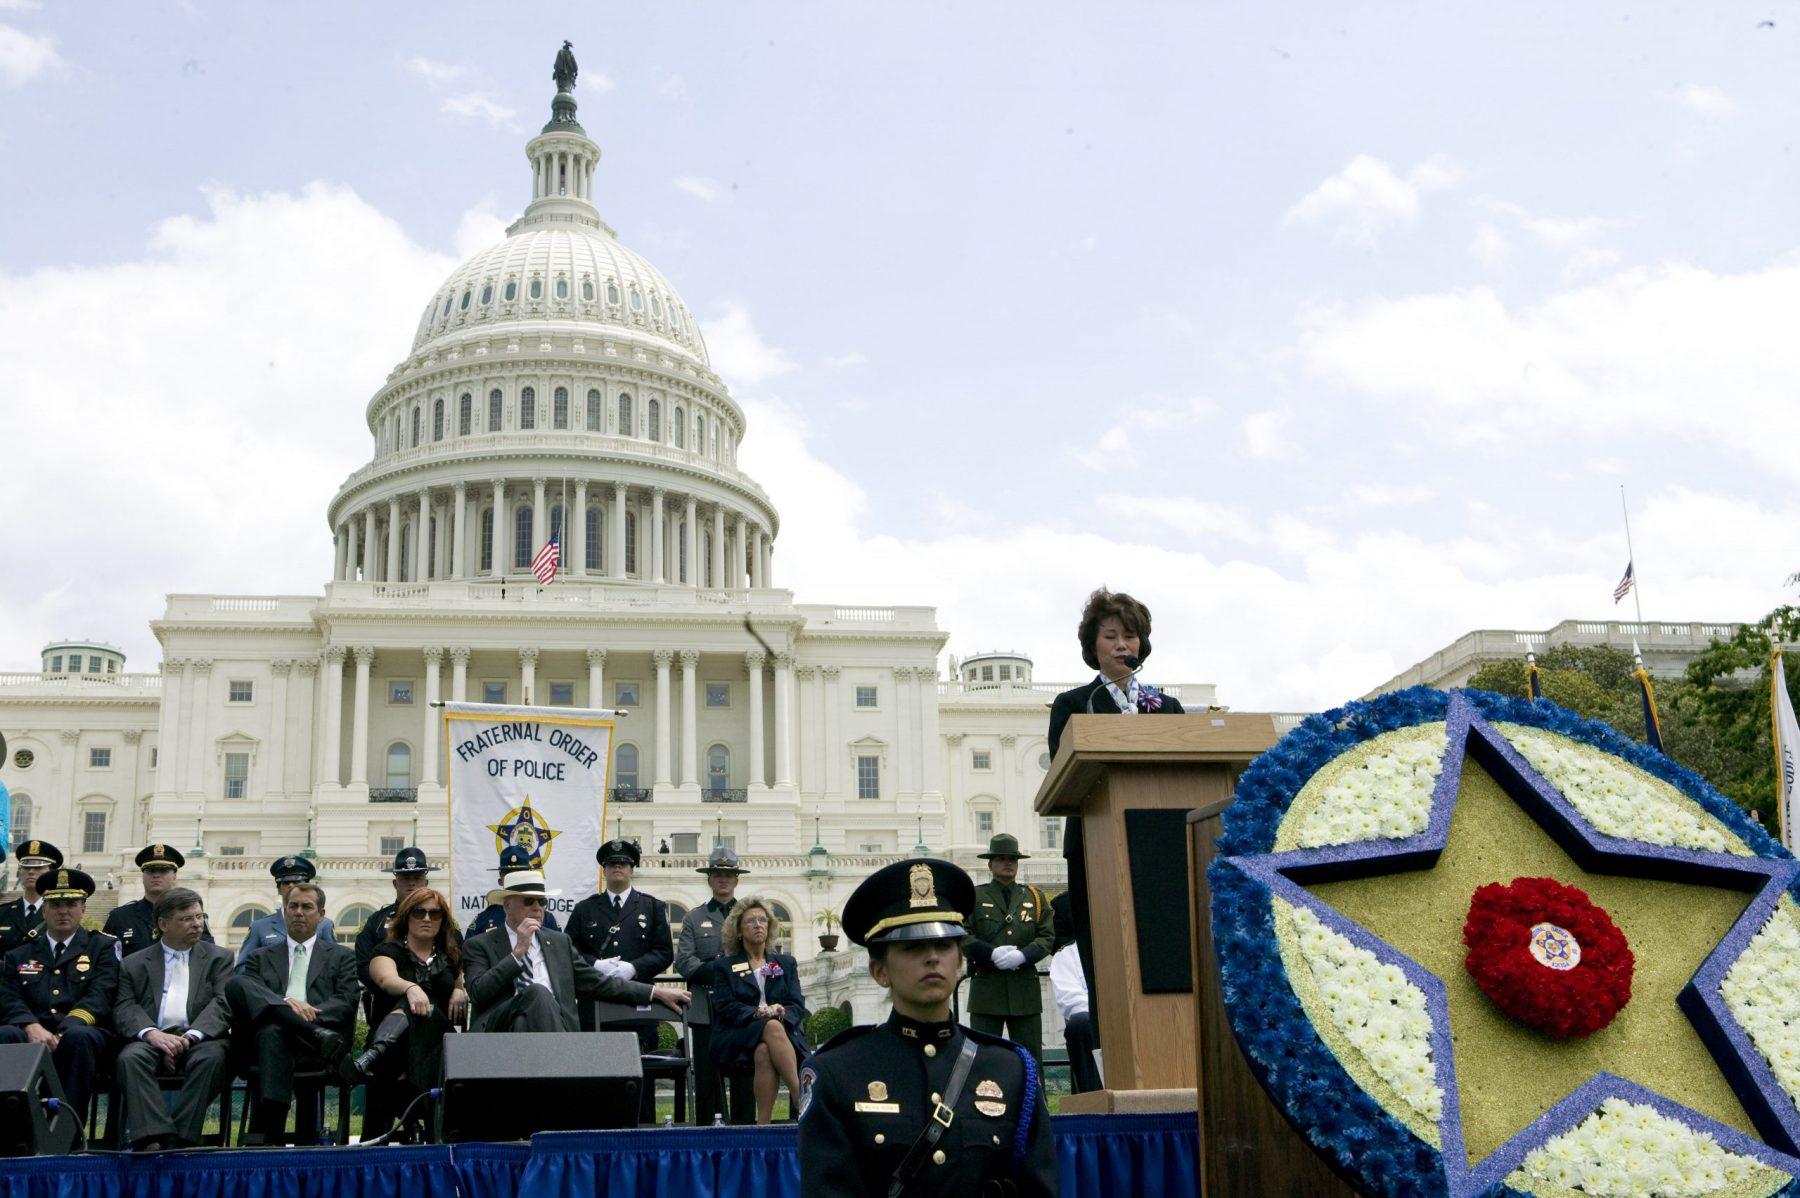 U.S. Secretary of Labor Elaine Chao keynoting the National Peace Officers Memorial Service hosted by the Fraternal Order of Police, National Mall, Washington, D.C.